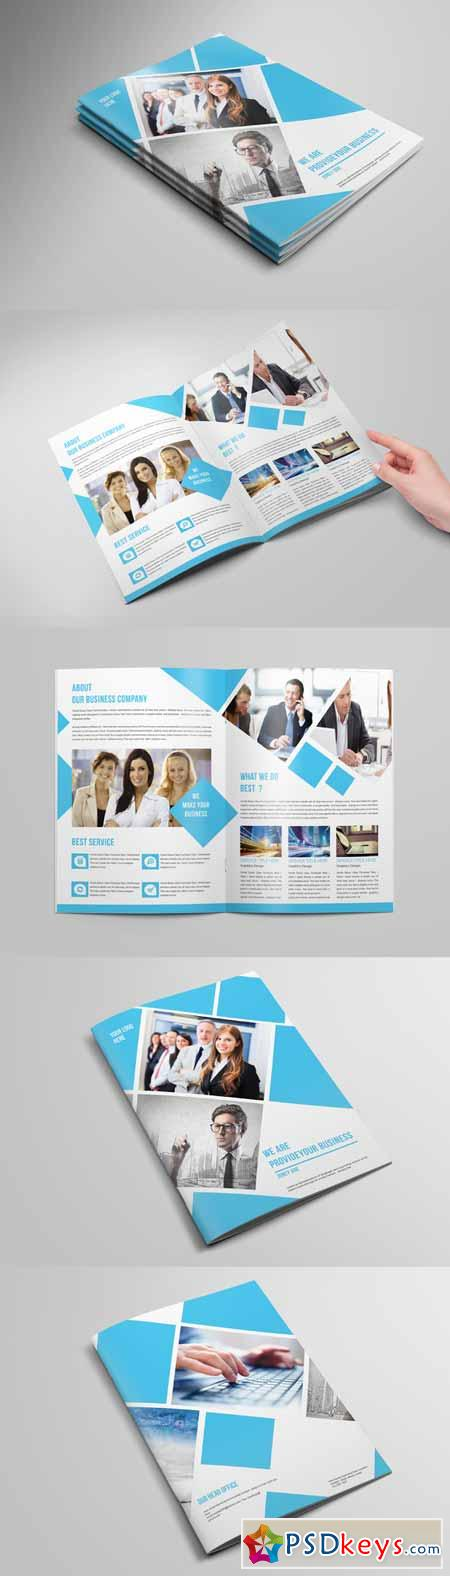 Bi fold business brochure template 479197 free download for Bi fold brochure template indesign free